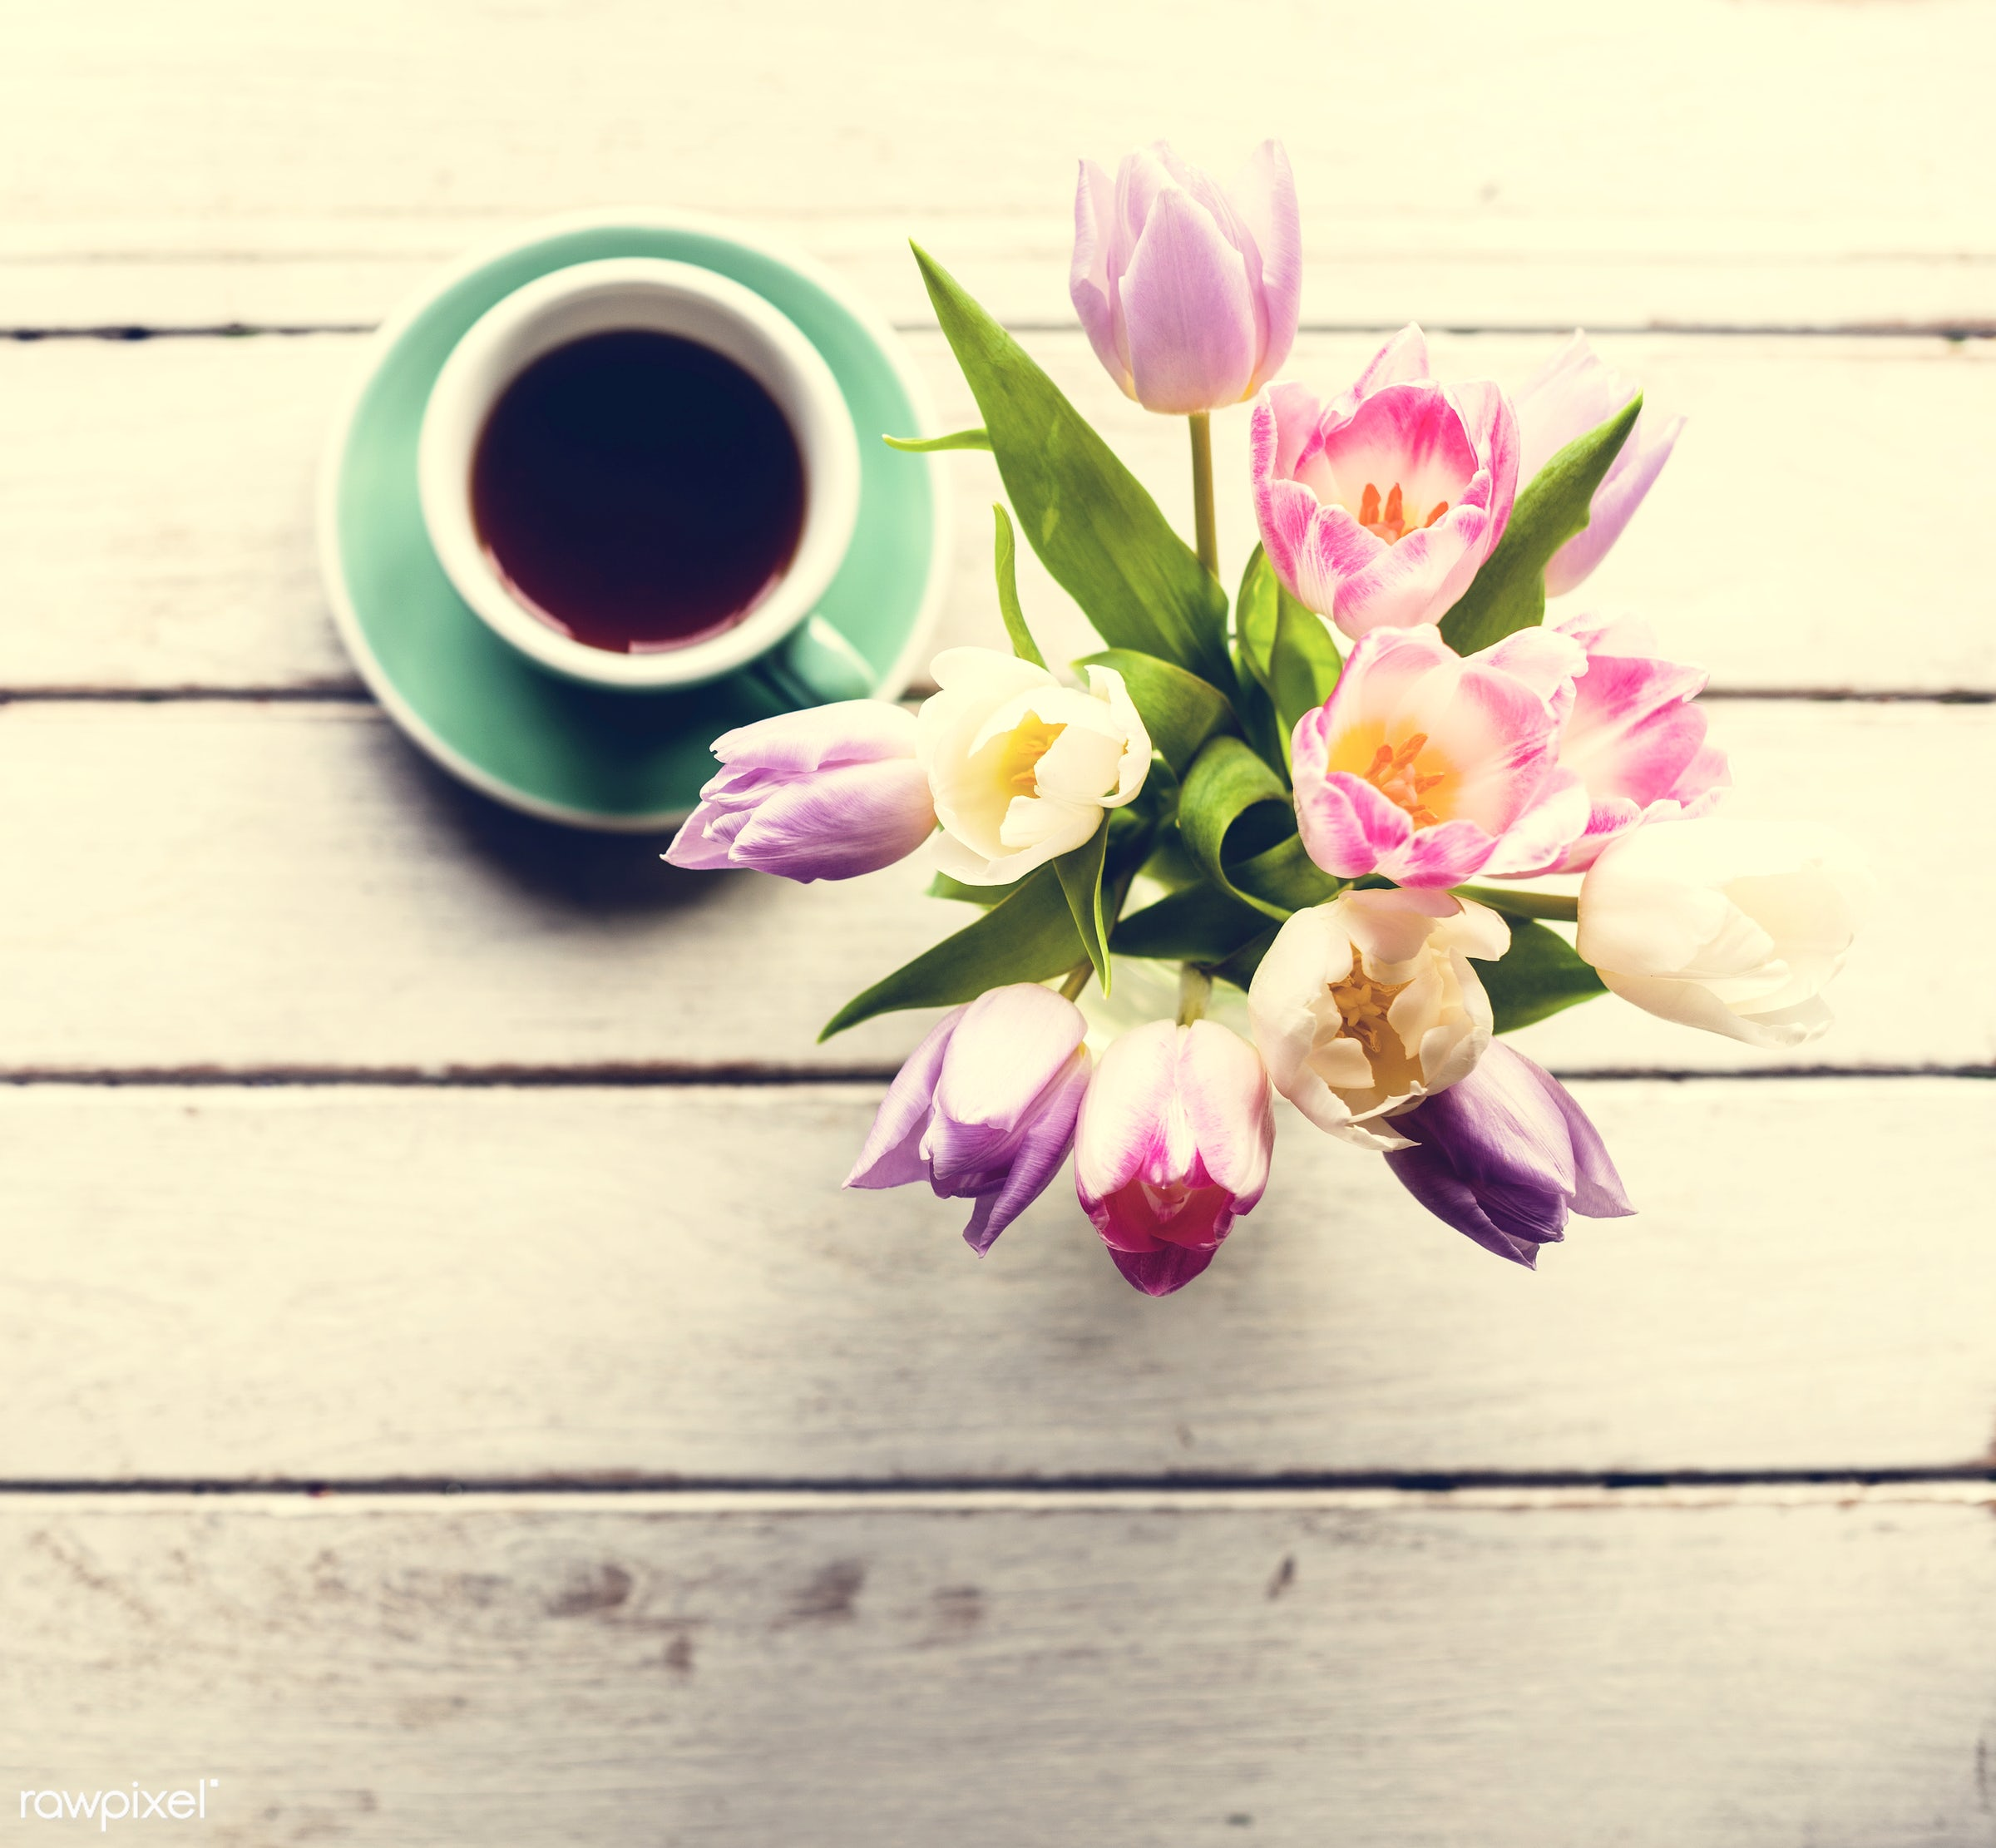 cup, nobody, detail, leaf, leaves, decor, nature, pink, flowers, refreshment, coffee, white, florist, present, arrangement,...